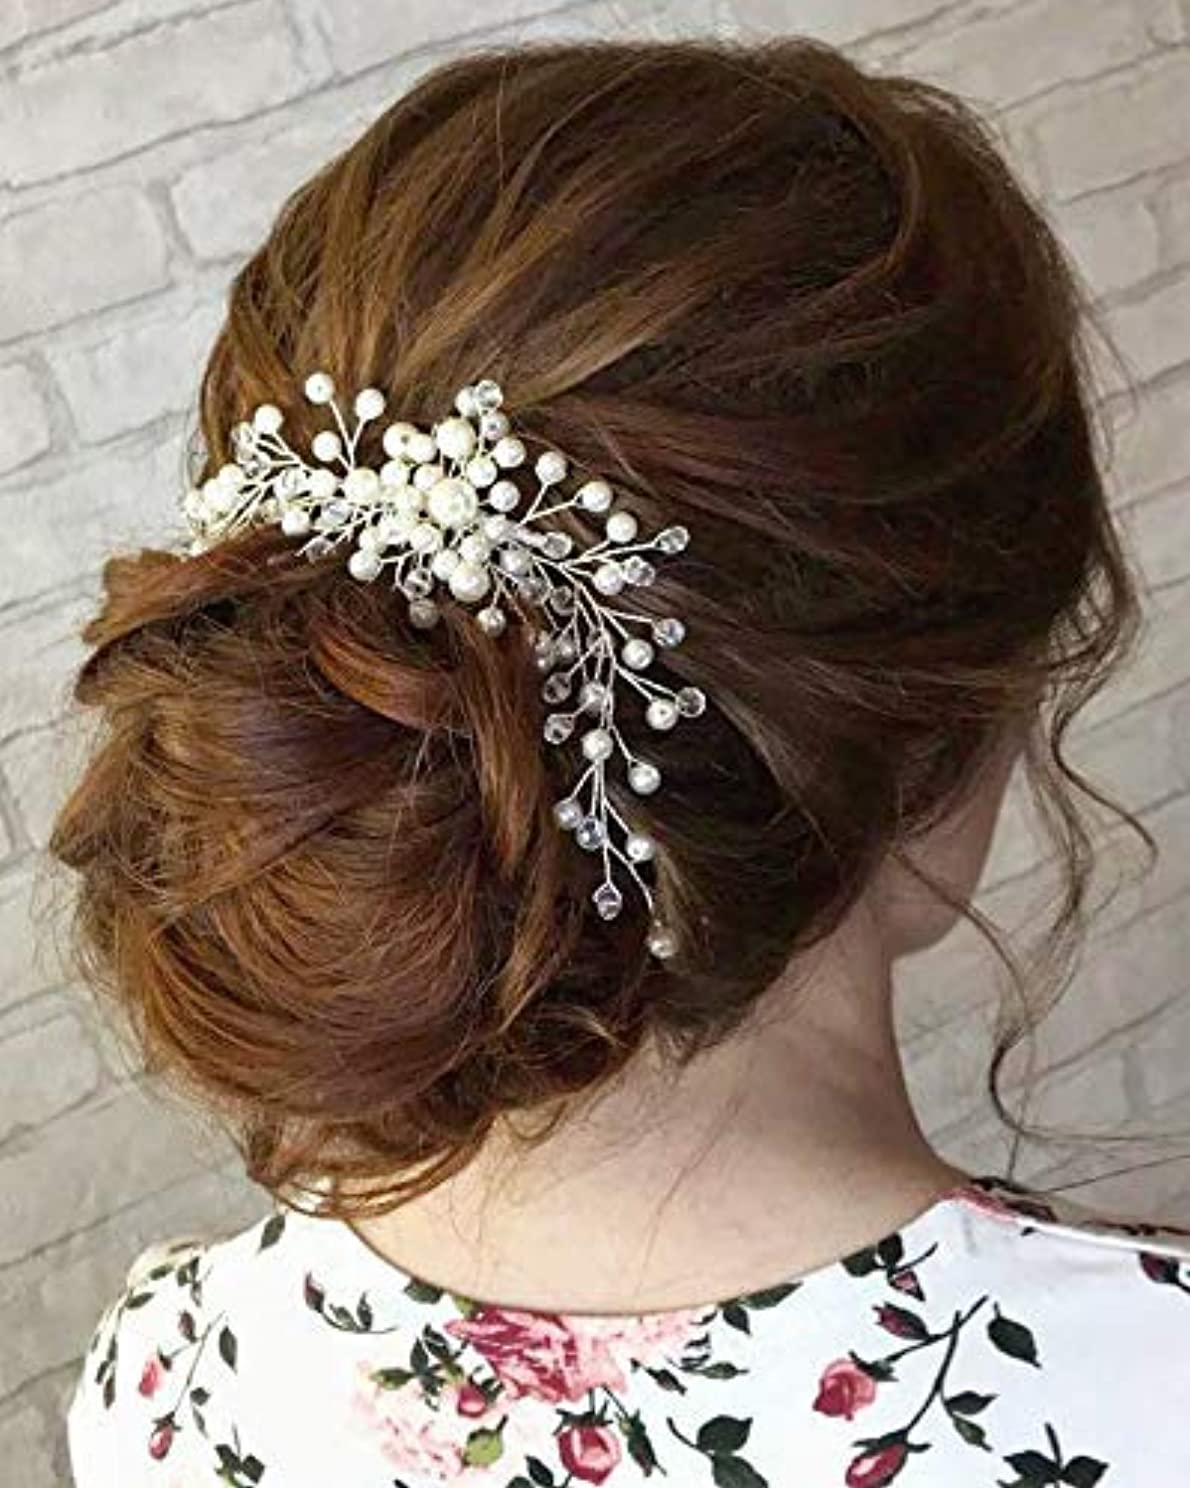 助けて美しいユーモラスKercisbeauty Wedding Simple Pearl Hair Comb for Brides Bridal Headpiece Long Curly Updo Hair Accessories Prom Hair Dress for Women(Silver) [並行輸入品]